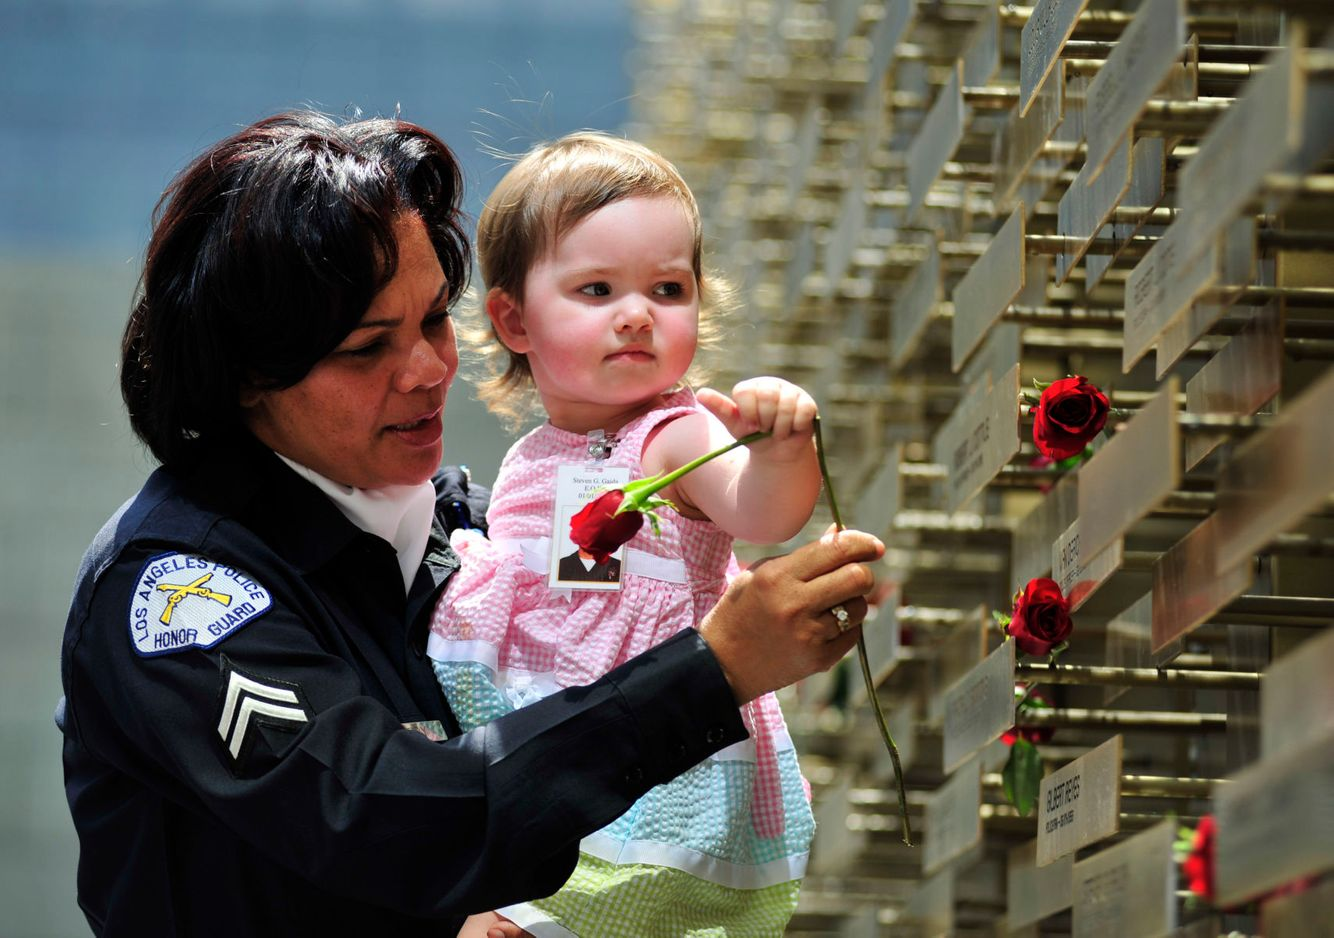 MEMORIAL: A member of th LAPD helps the niece of a fallen Officer place a rose at a memorial in Los Angeles